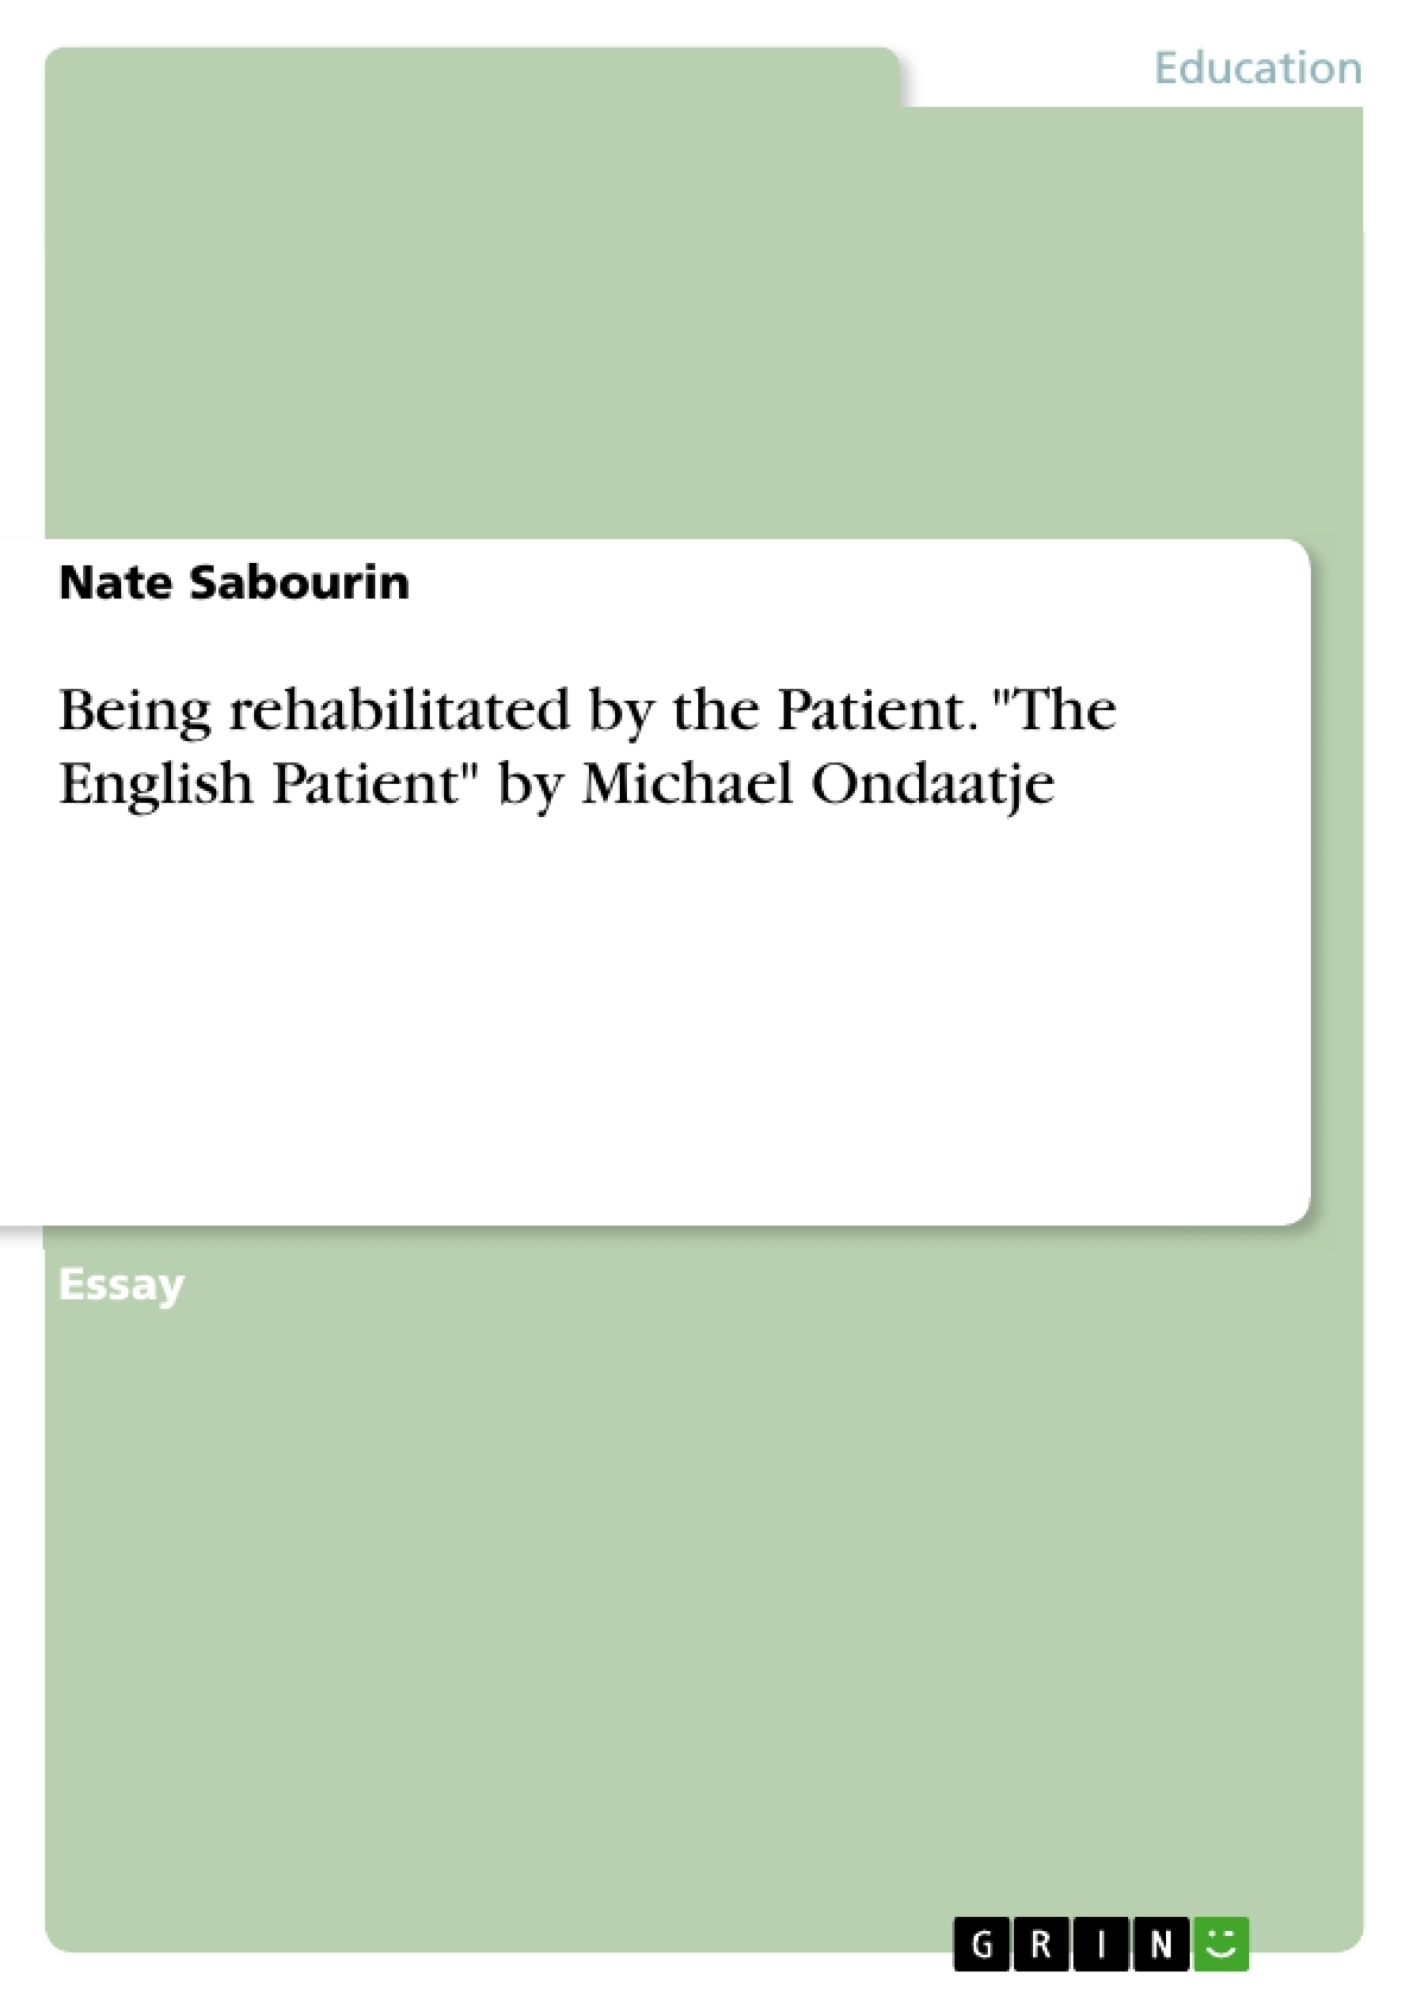 an examination of the book the english patient by michael ondaatje The english patient  more by michael ondaatje fiction warlight  our editors select the one author and one book they believe to be most worthy of your .